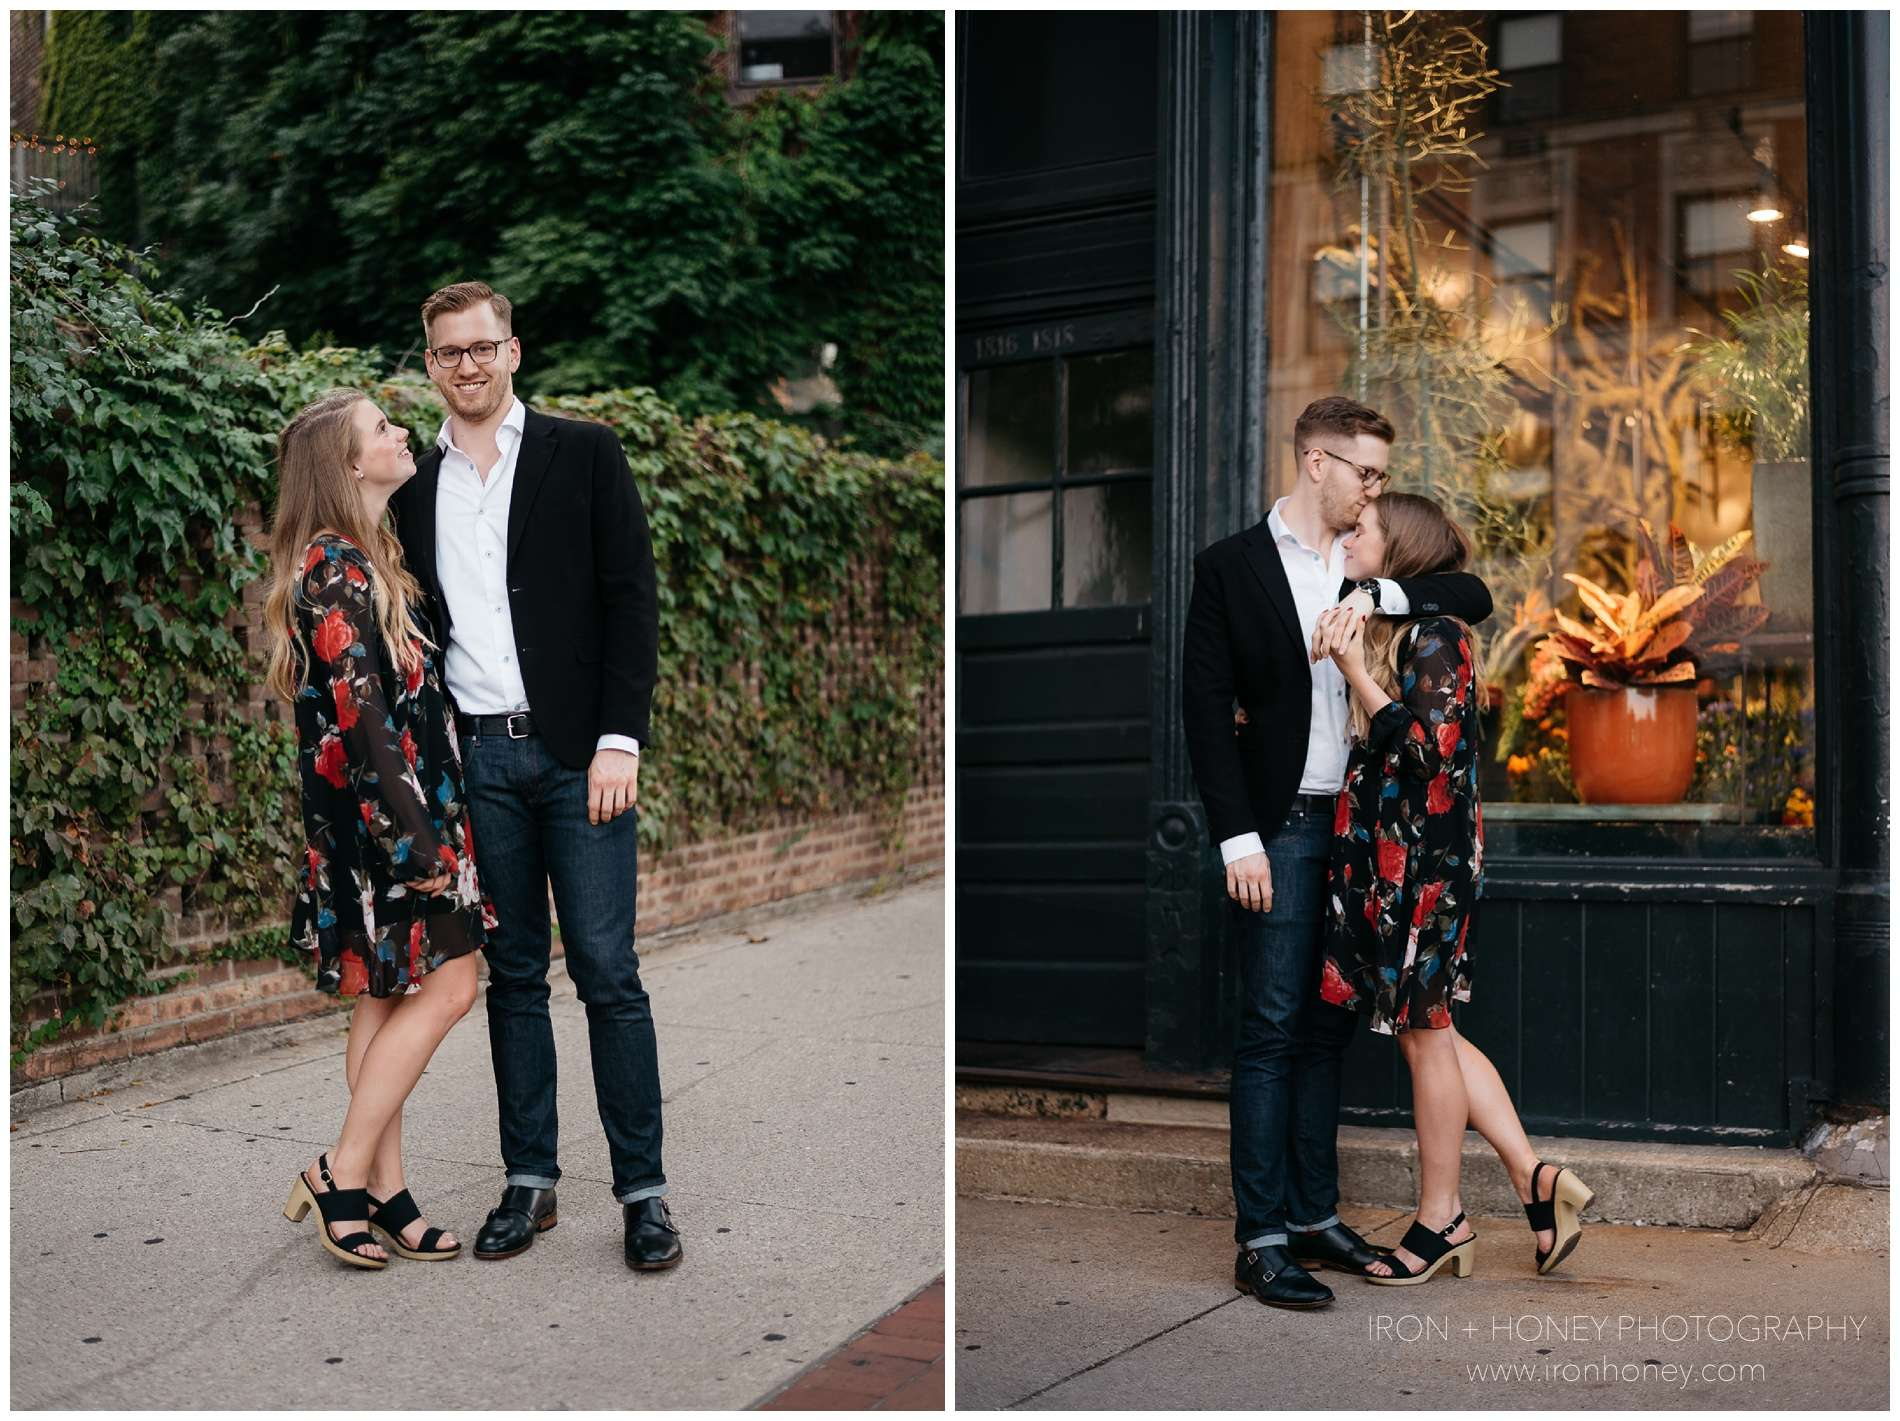 old town, lincoln park, lifestyle, engagement photographer, engagement session, lifestyle session, lifestyle photographer, chicago wedding photographer, chicago elopement photographer, old town art walk, chicago,